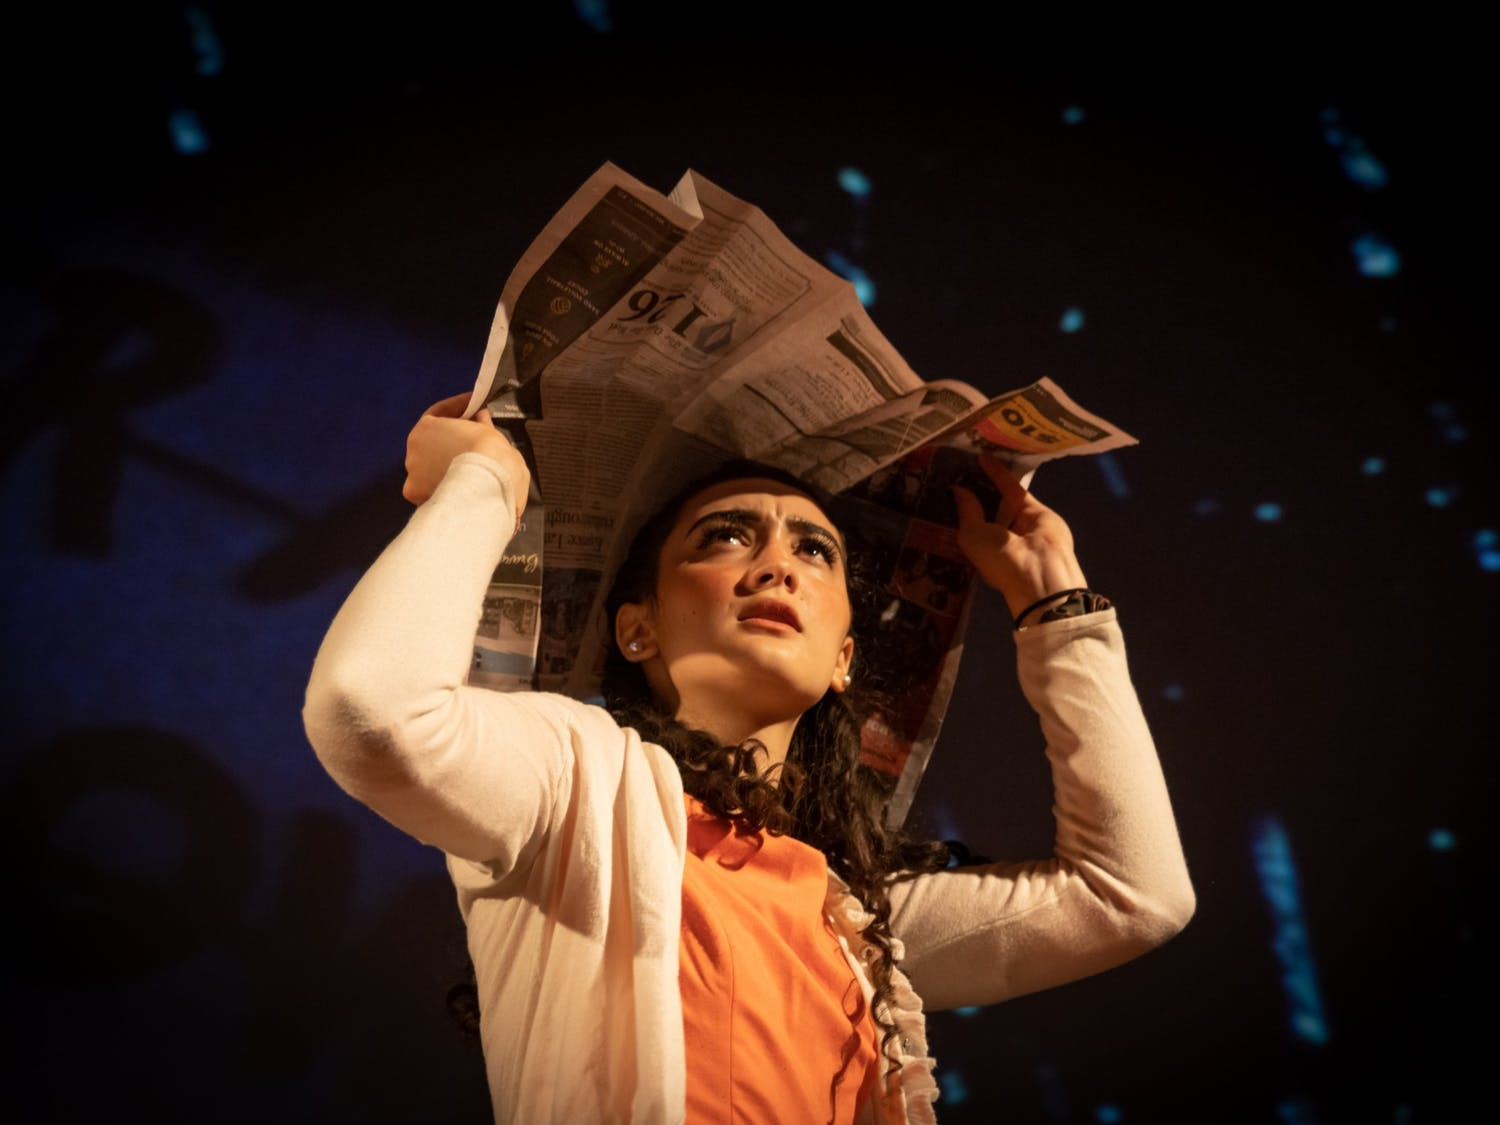 UNC sophomore Isabella Patterson portrays Janet Weiss during an Oct. 26 technical rehearsal of the Rocky Horror Picture Show at the Varsity Theatre. The production is an annual tradition of the UNC Pauper Players.